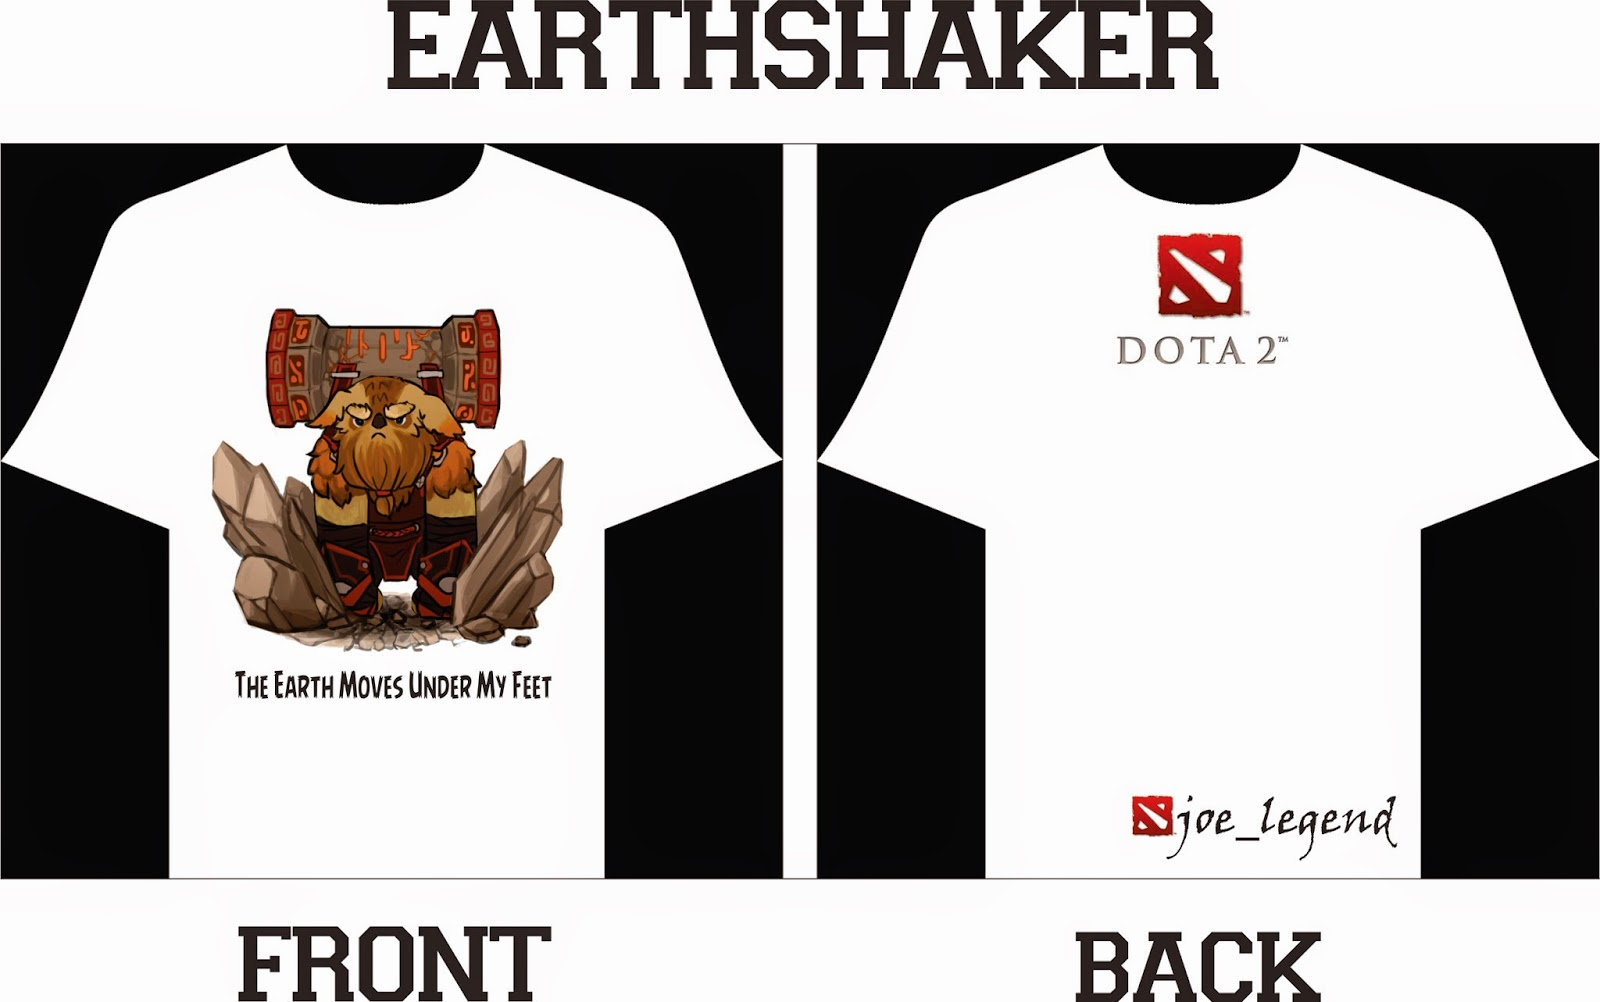 Dota 2 tshirt design -  Of Our Design And What You Need Is Just Put Your Dota 2 Id Name Then You Ll Be The Star On The Street Everyone Will Know Your Id Name In Dota 2